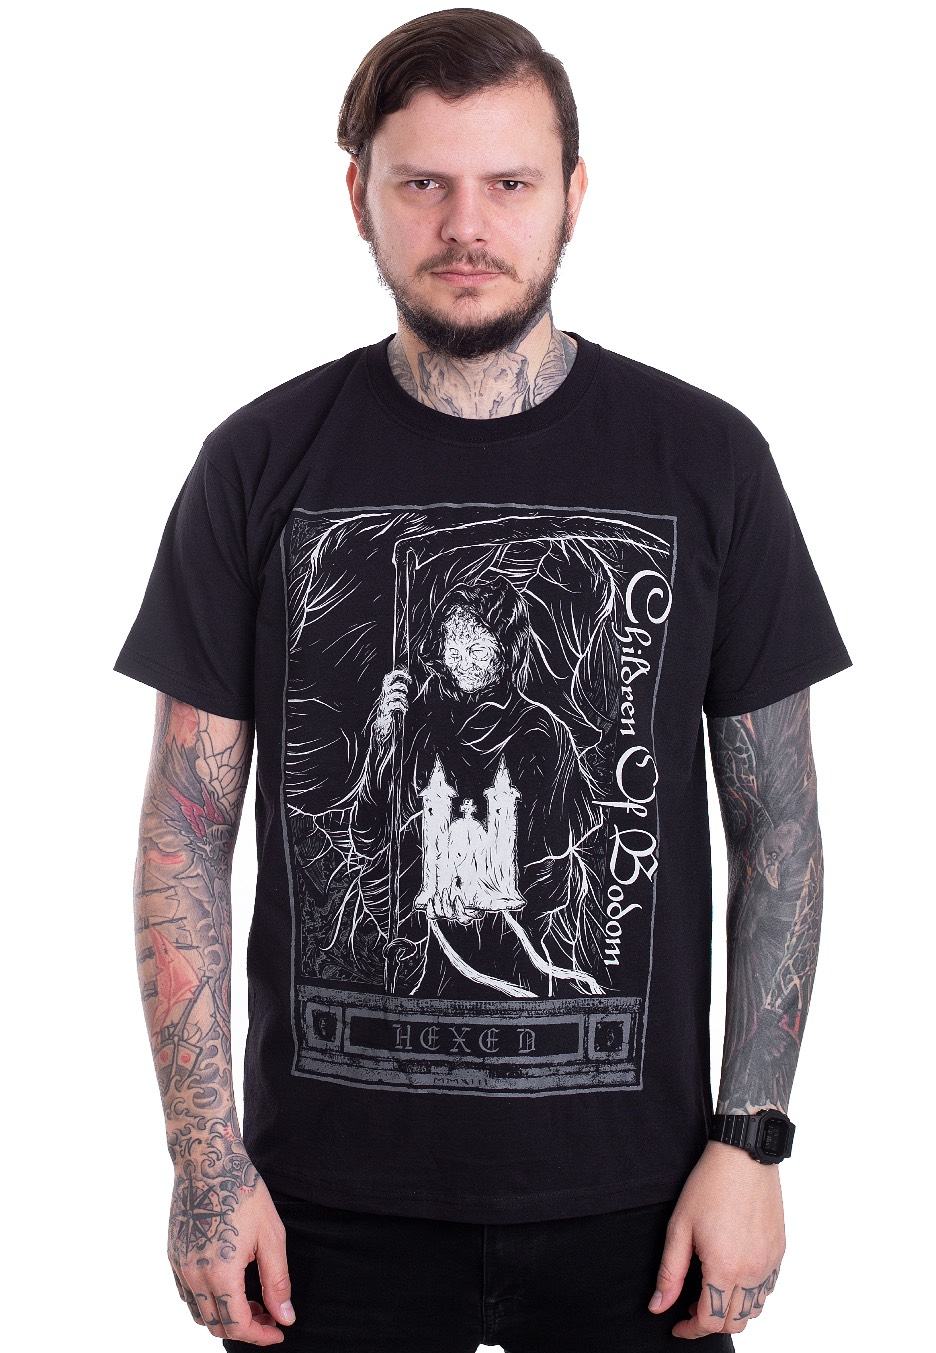 037a1da9 Children Of Bodom - Hexed - T-Shirt - Official Metal Merchandise Shop -  Impericon.com US